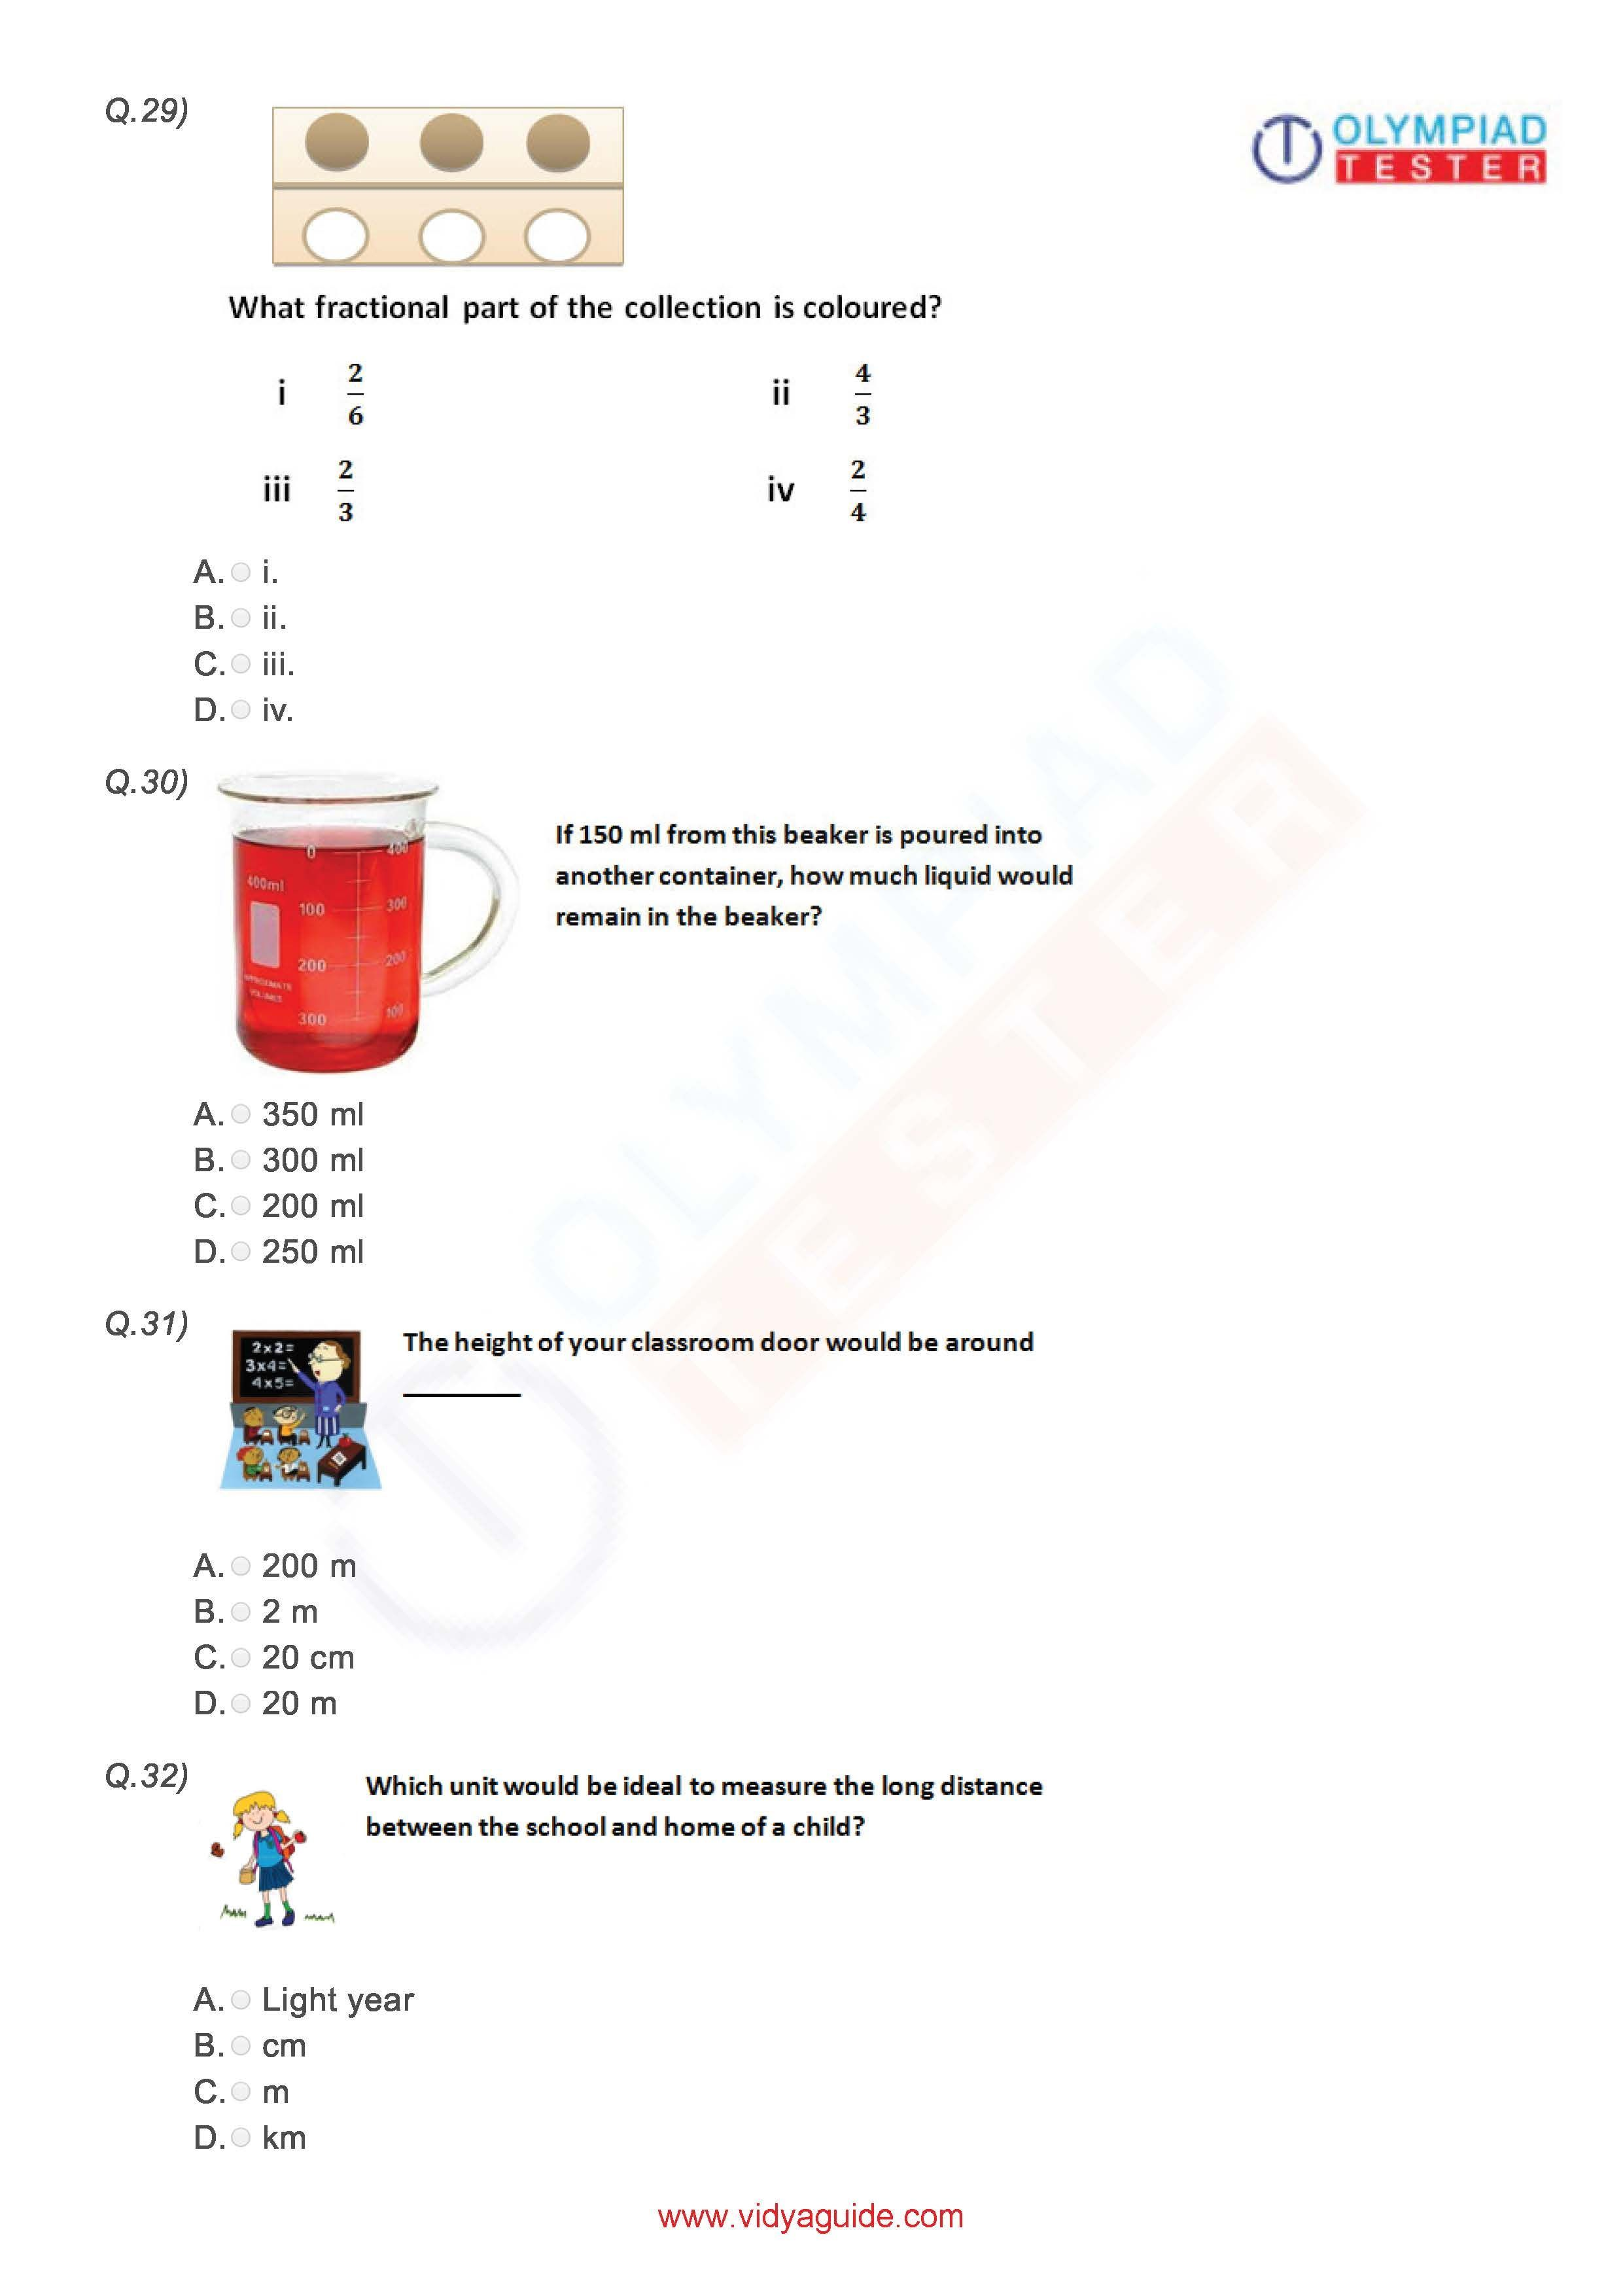 Download Free Grade 3 Maths Printable Worksheets Or Take The Tests Online At Vidyaguide Math Olympiad Math Math Printables